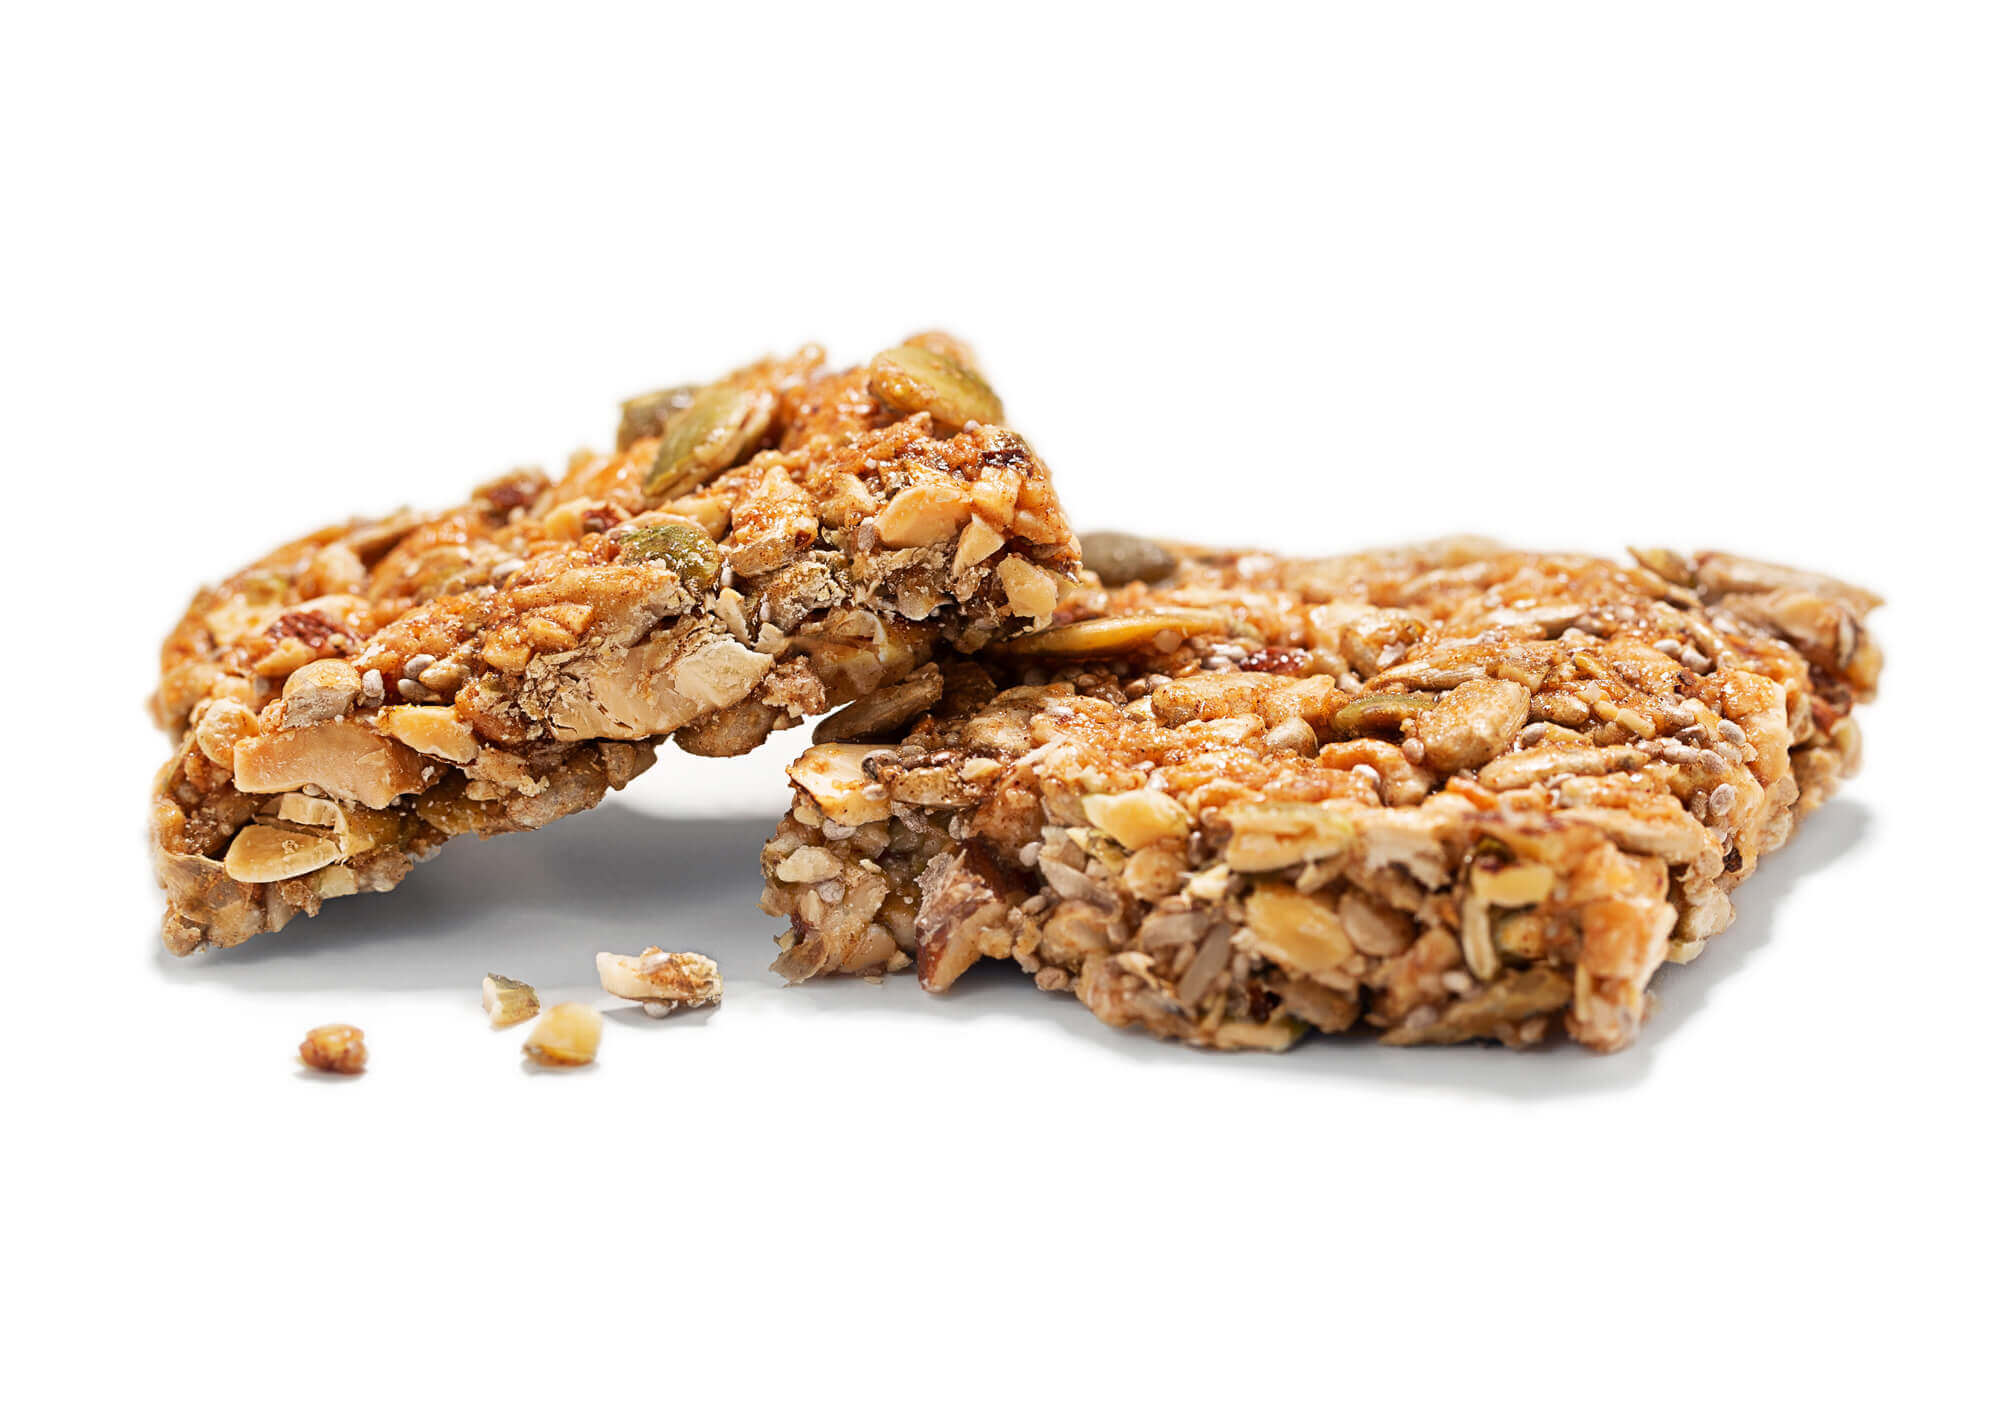 Crumbly granola bar